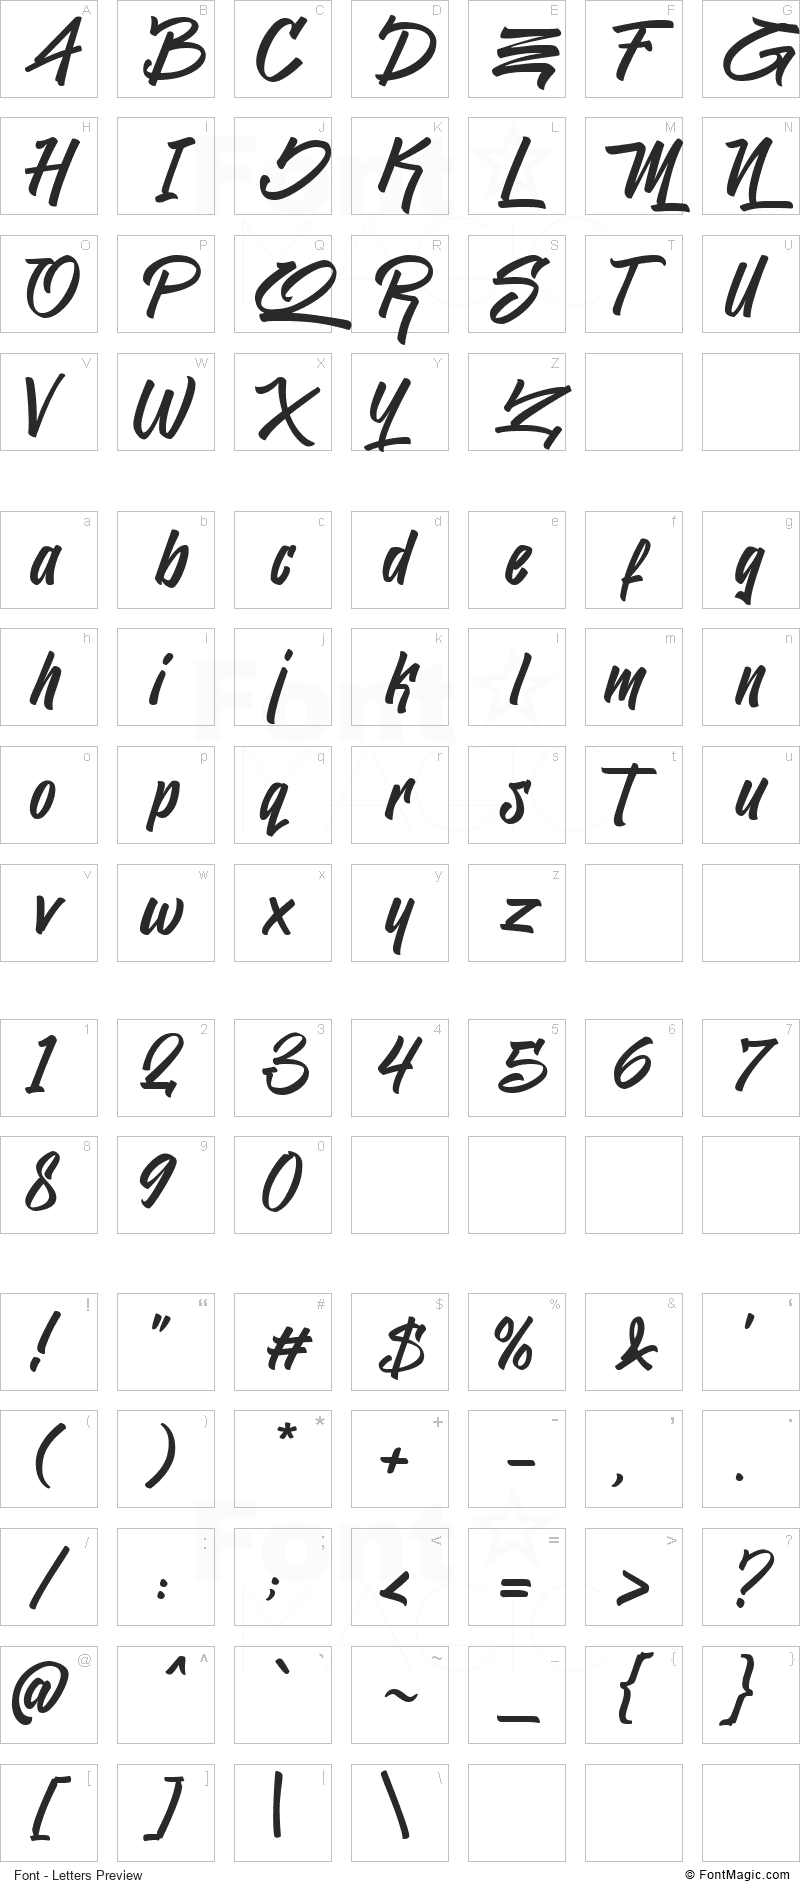 Jacksilver Font - All Latters Preview Chart